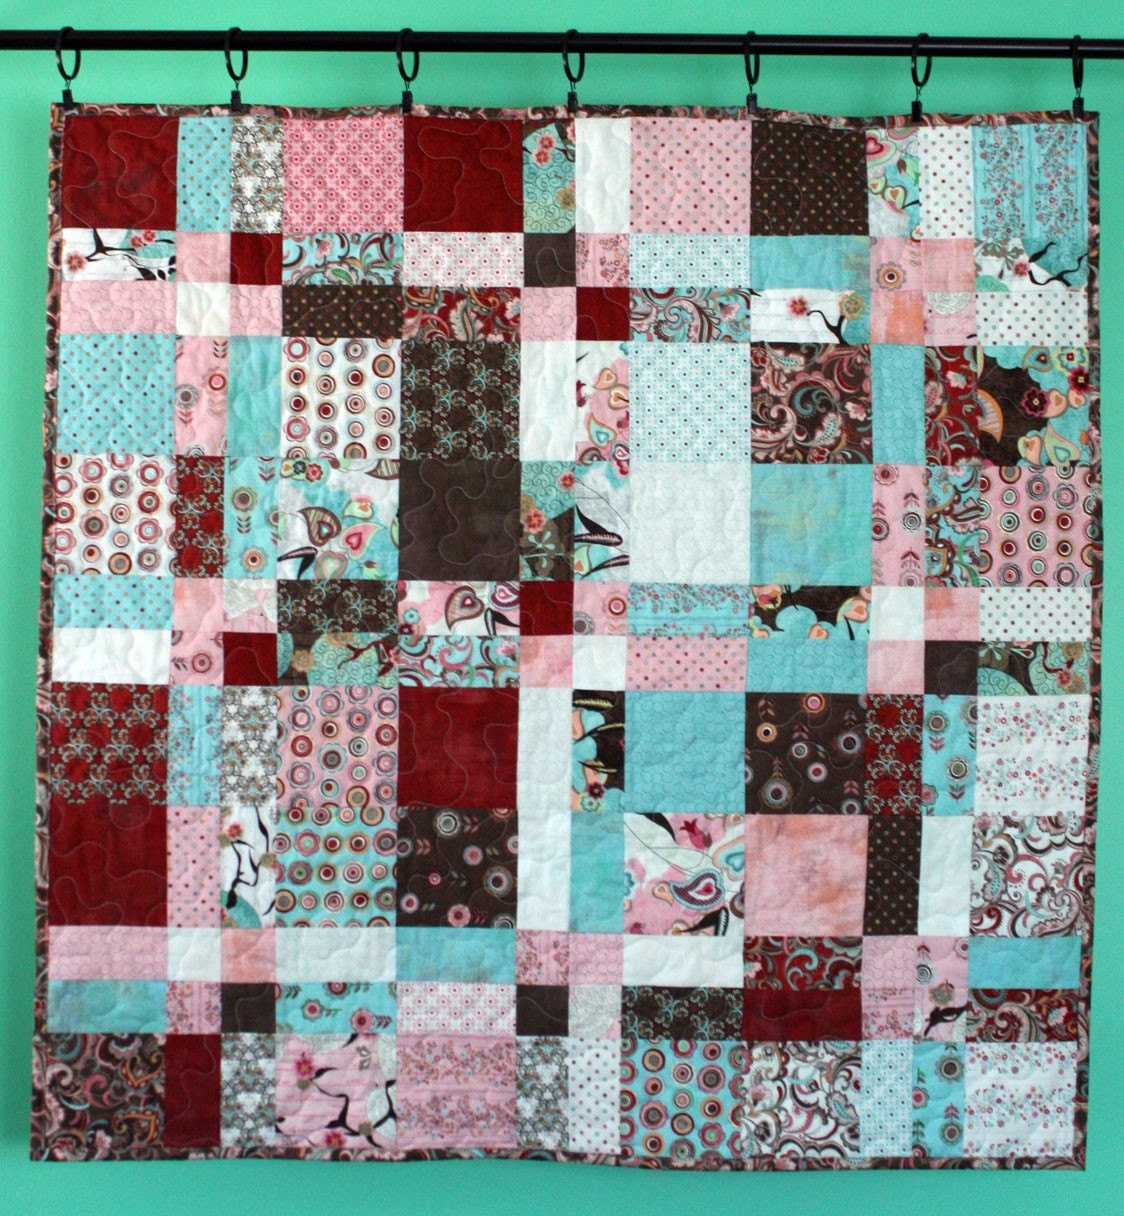 blush baby quilt - - double dutch floral baby crib or wall hanging quilt